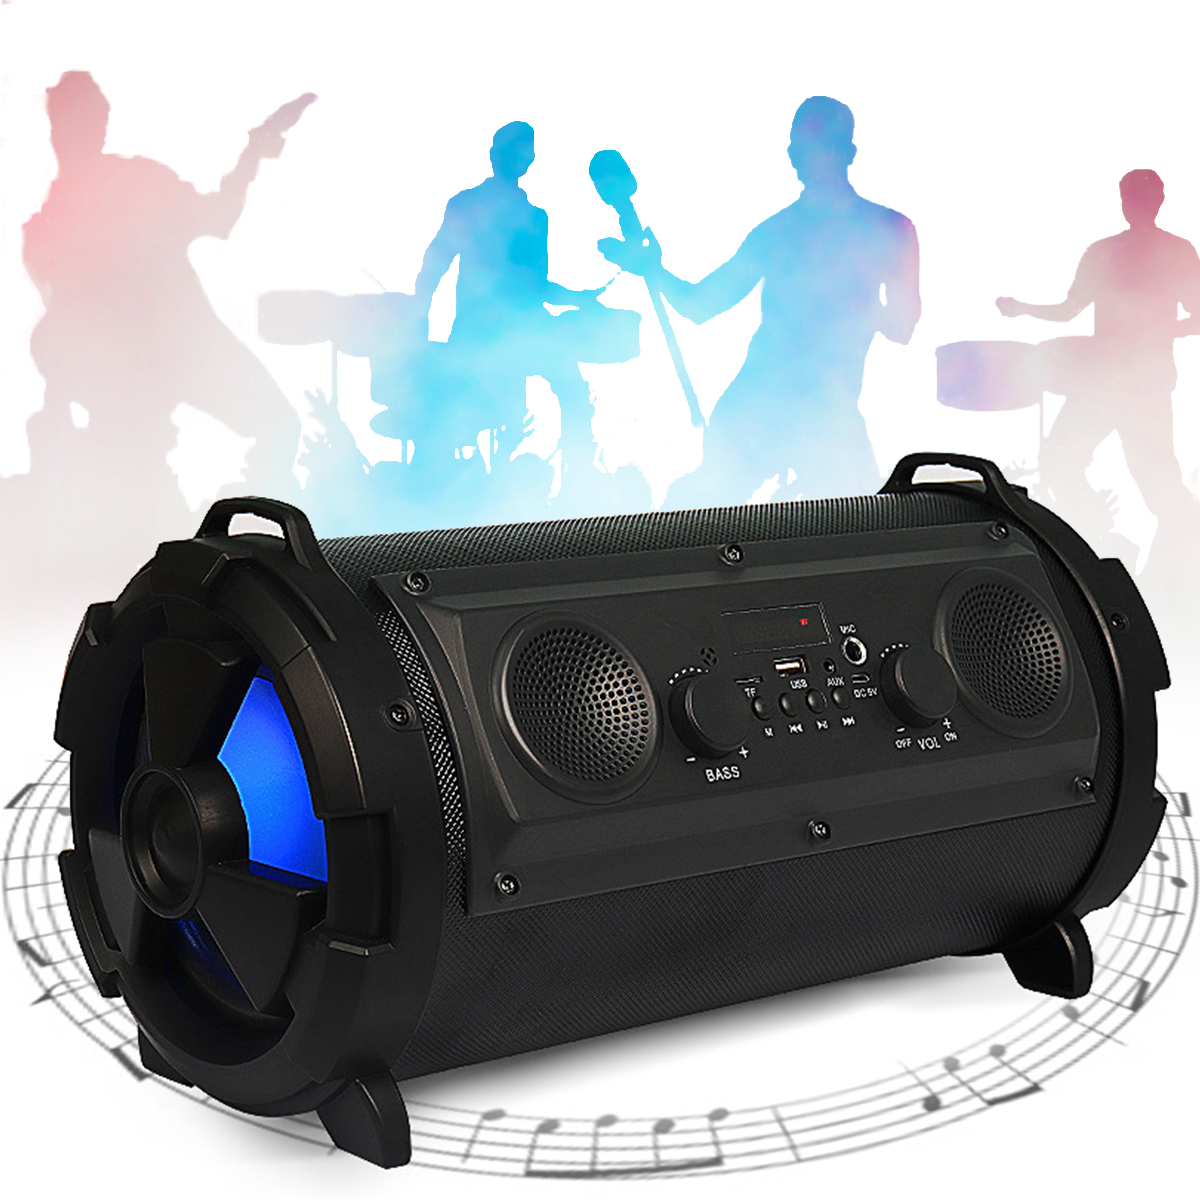 Portable Wireless Bluetooth Speaker Subwoofer With Misic Super Bass Speakers HIFI Stereo TF Card Outdoor Loundspeaker wooden bluetooth speaker wireless outdoor handsfree stereo subwoofer portable speakers 3600mah big power 10w 2 speaker